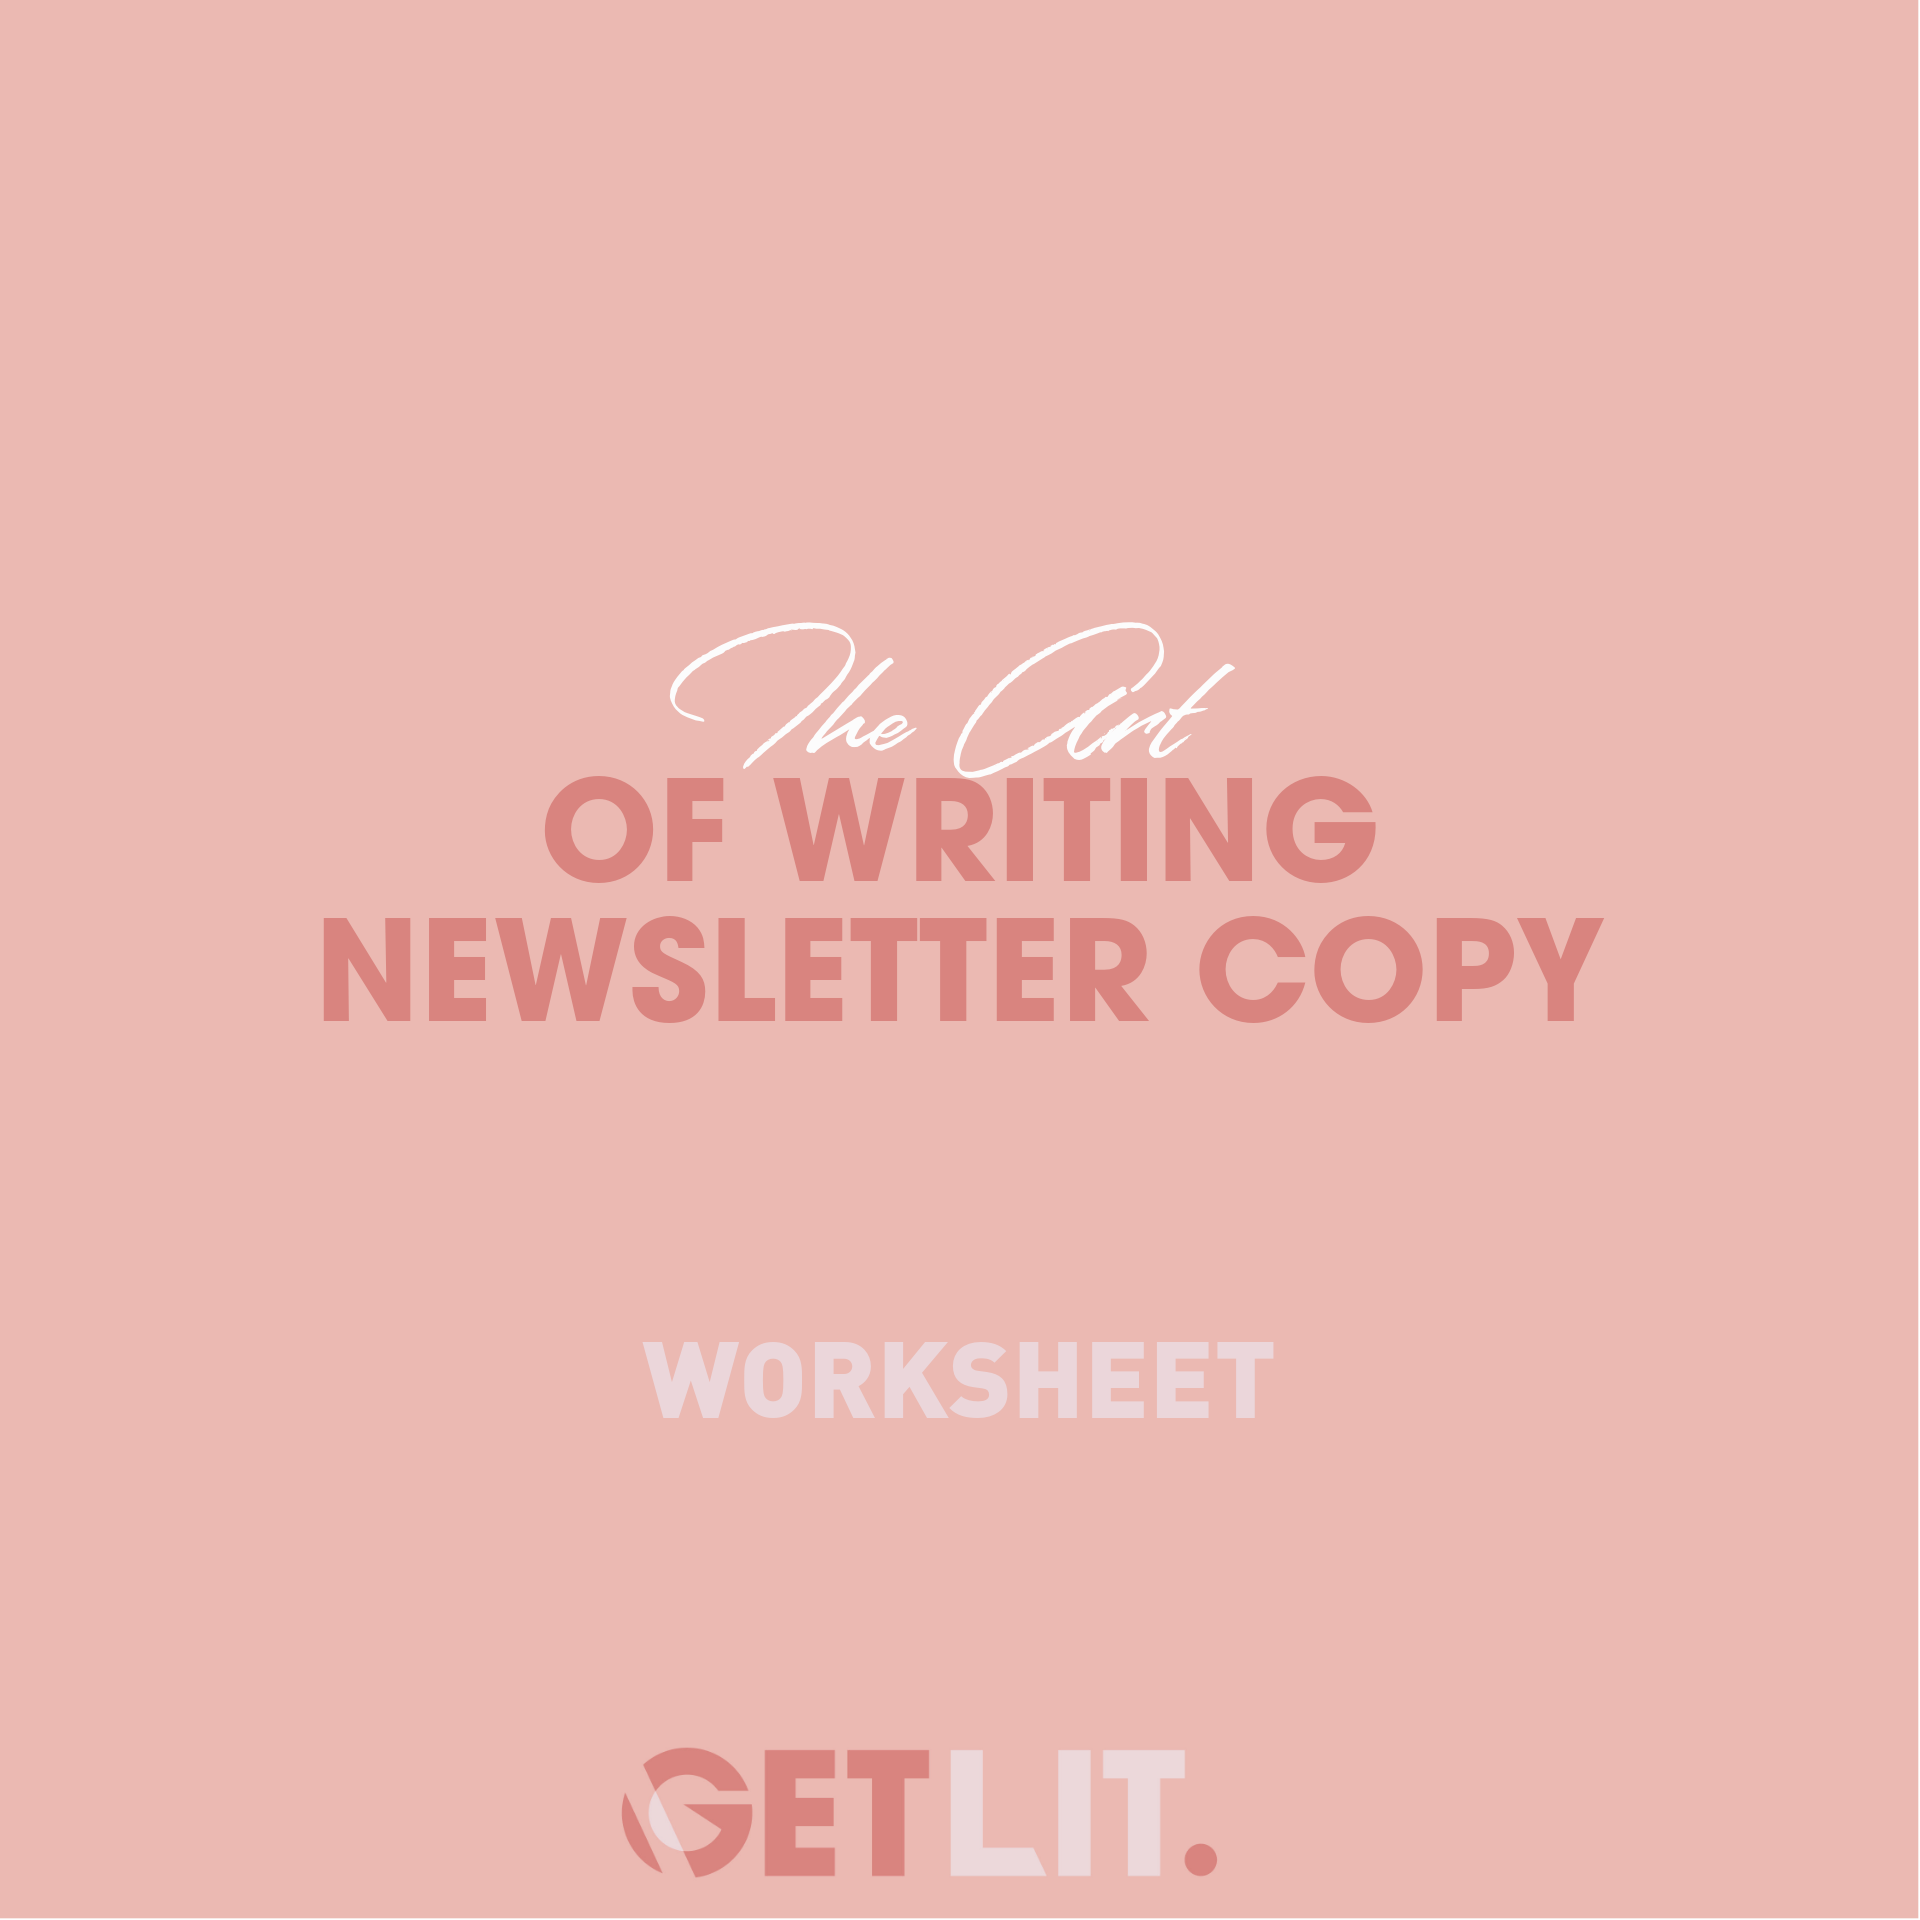 THE ART OF WRITING NEWSLETTER COPY - Learning the art of curating a newsletter that is captivating, easy to read and drives to a sale is a skill in itself and one that you want to get the hang of quickly in your business. Use this worksheet to help you understand how to curate the perfect newsletter